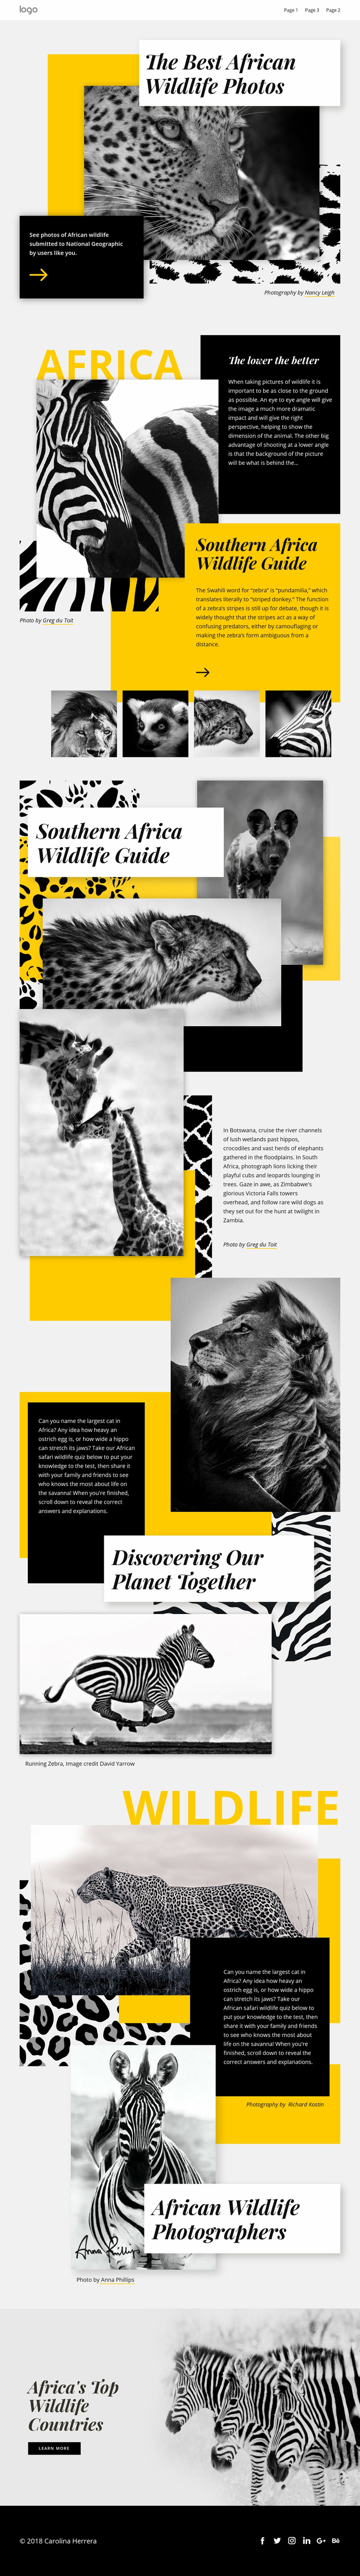 Best African Photos Web Page Design